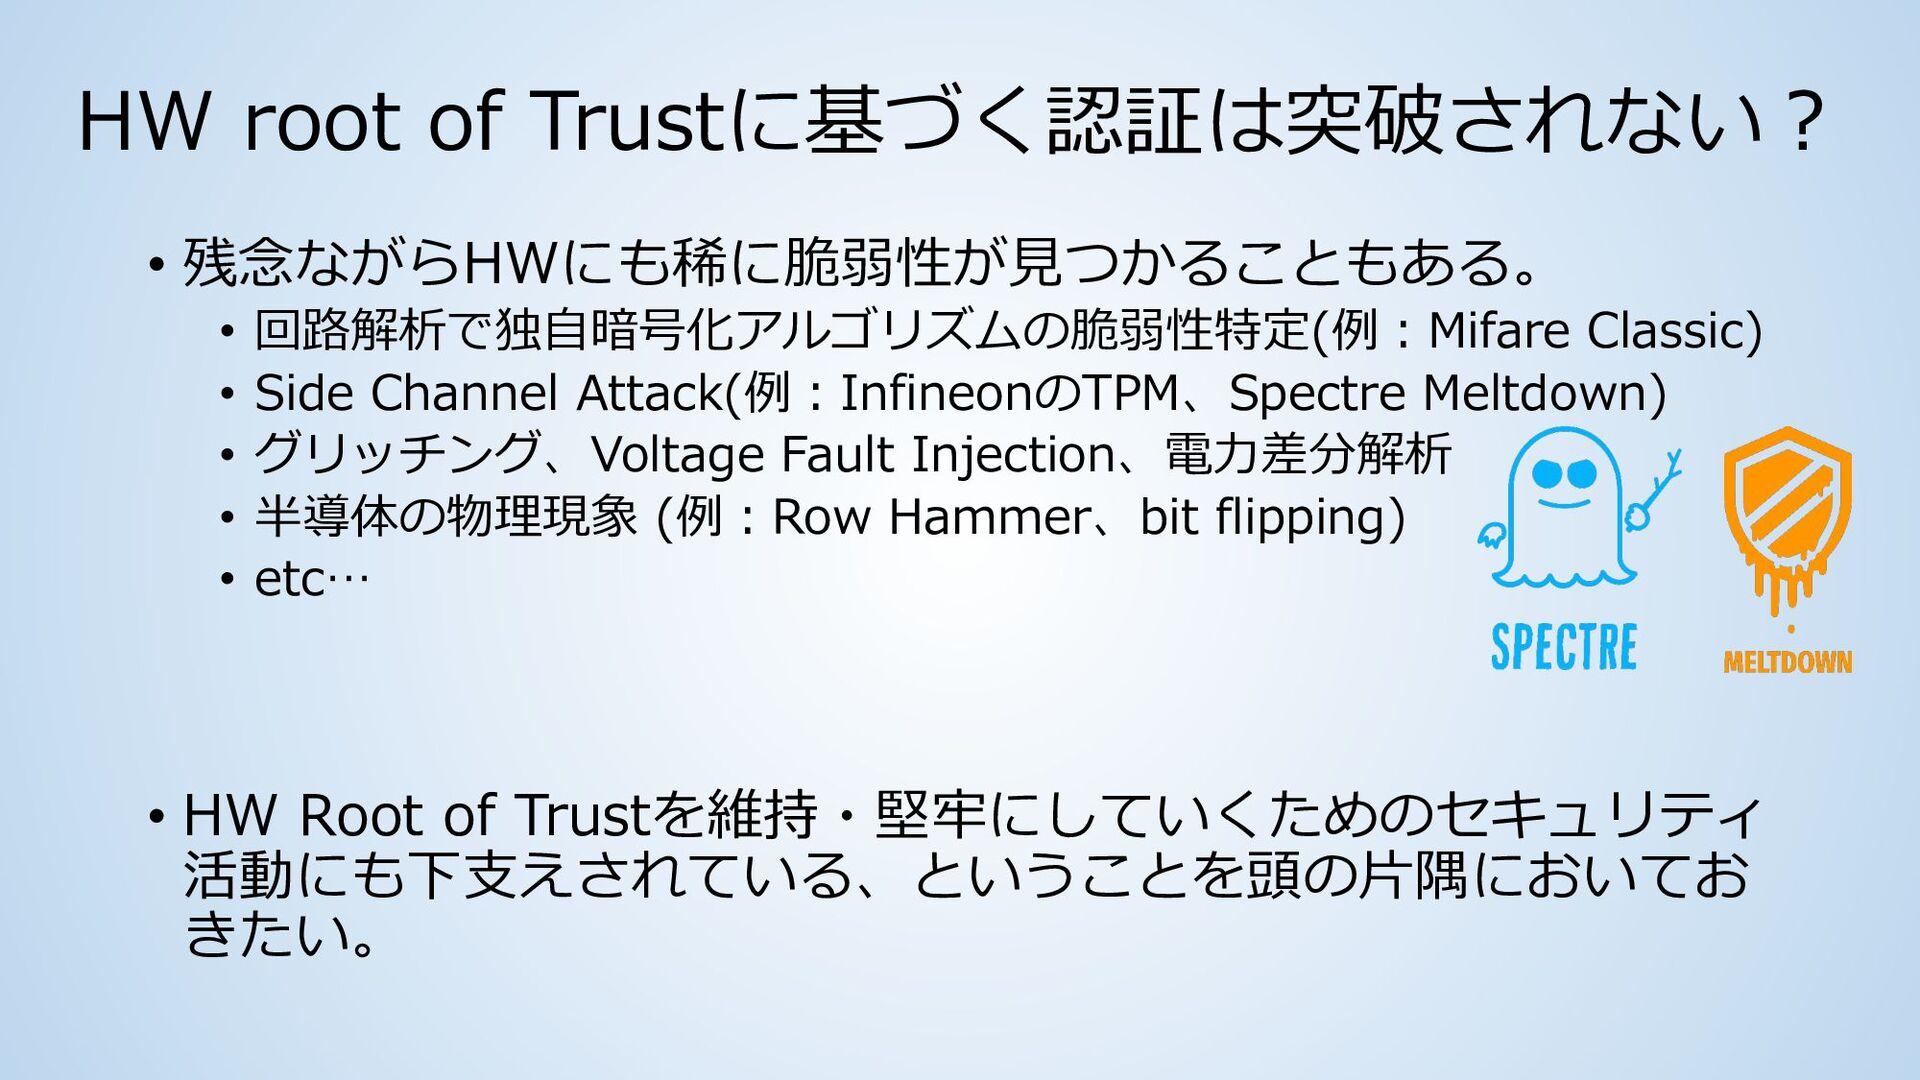 (Blank) https://www.flickr.com/photos/alexriste...